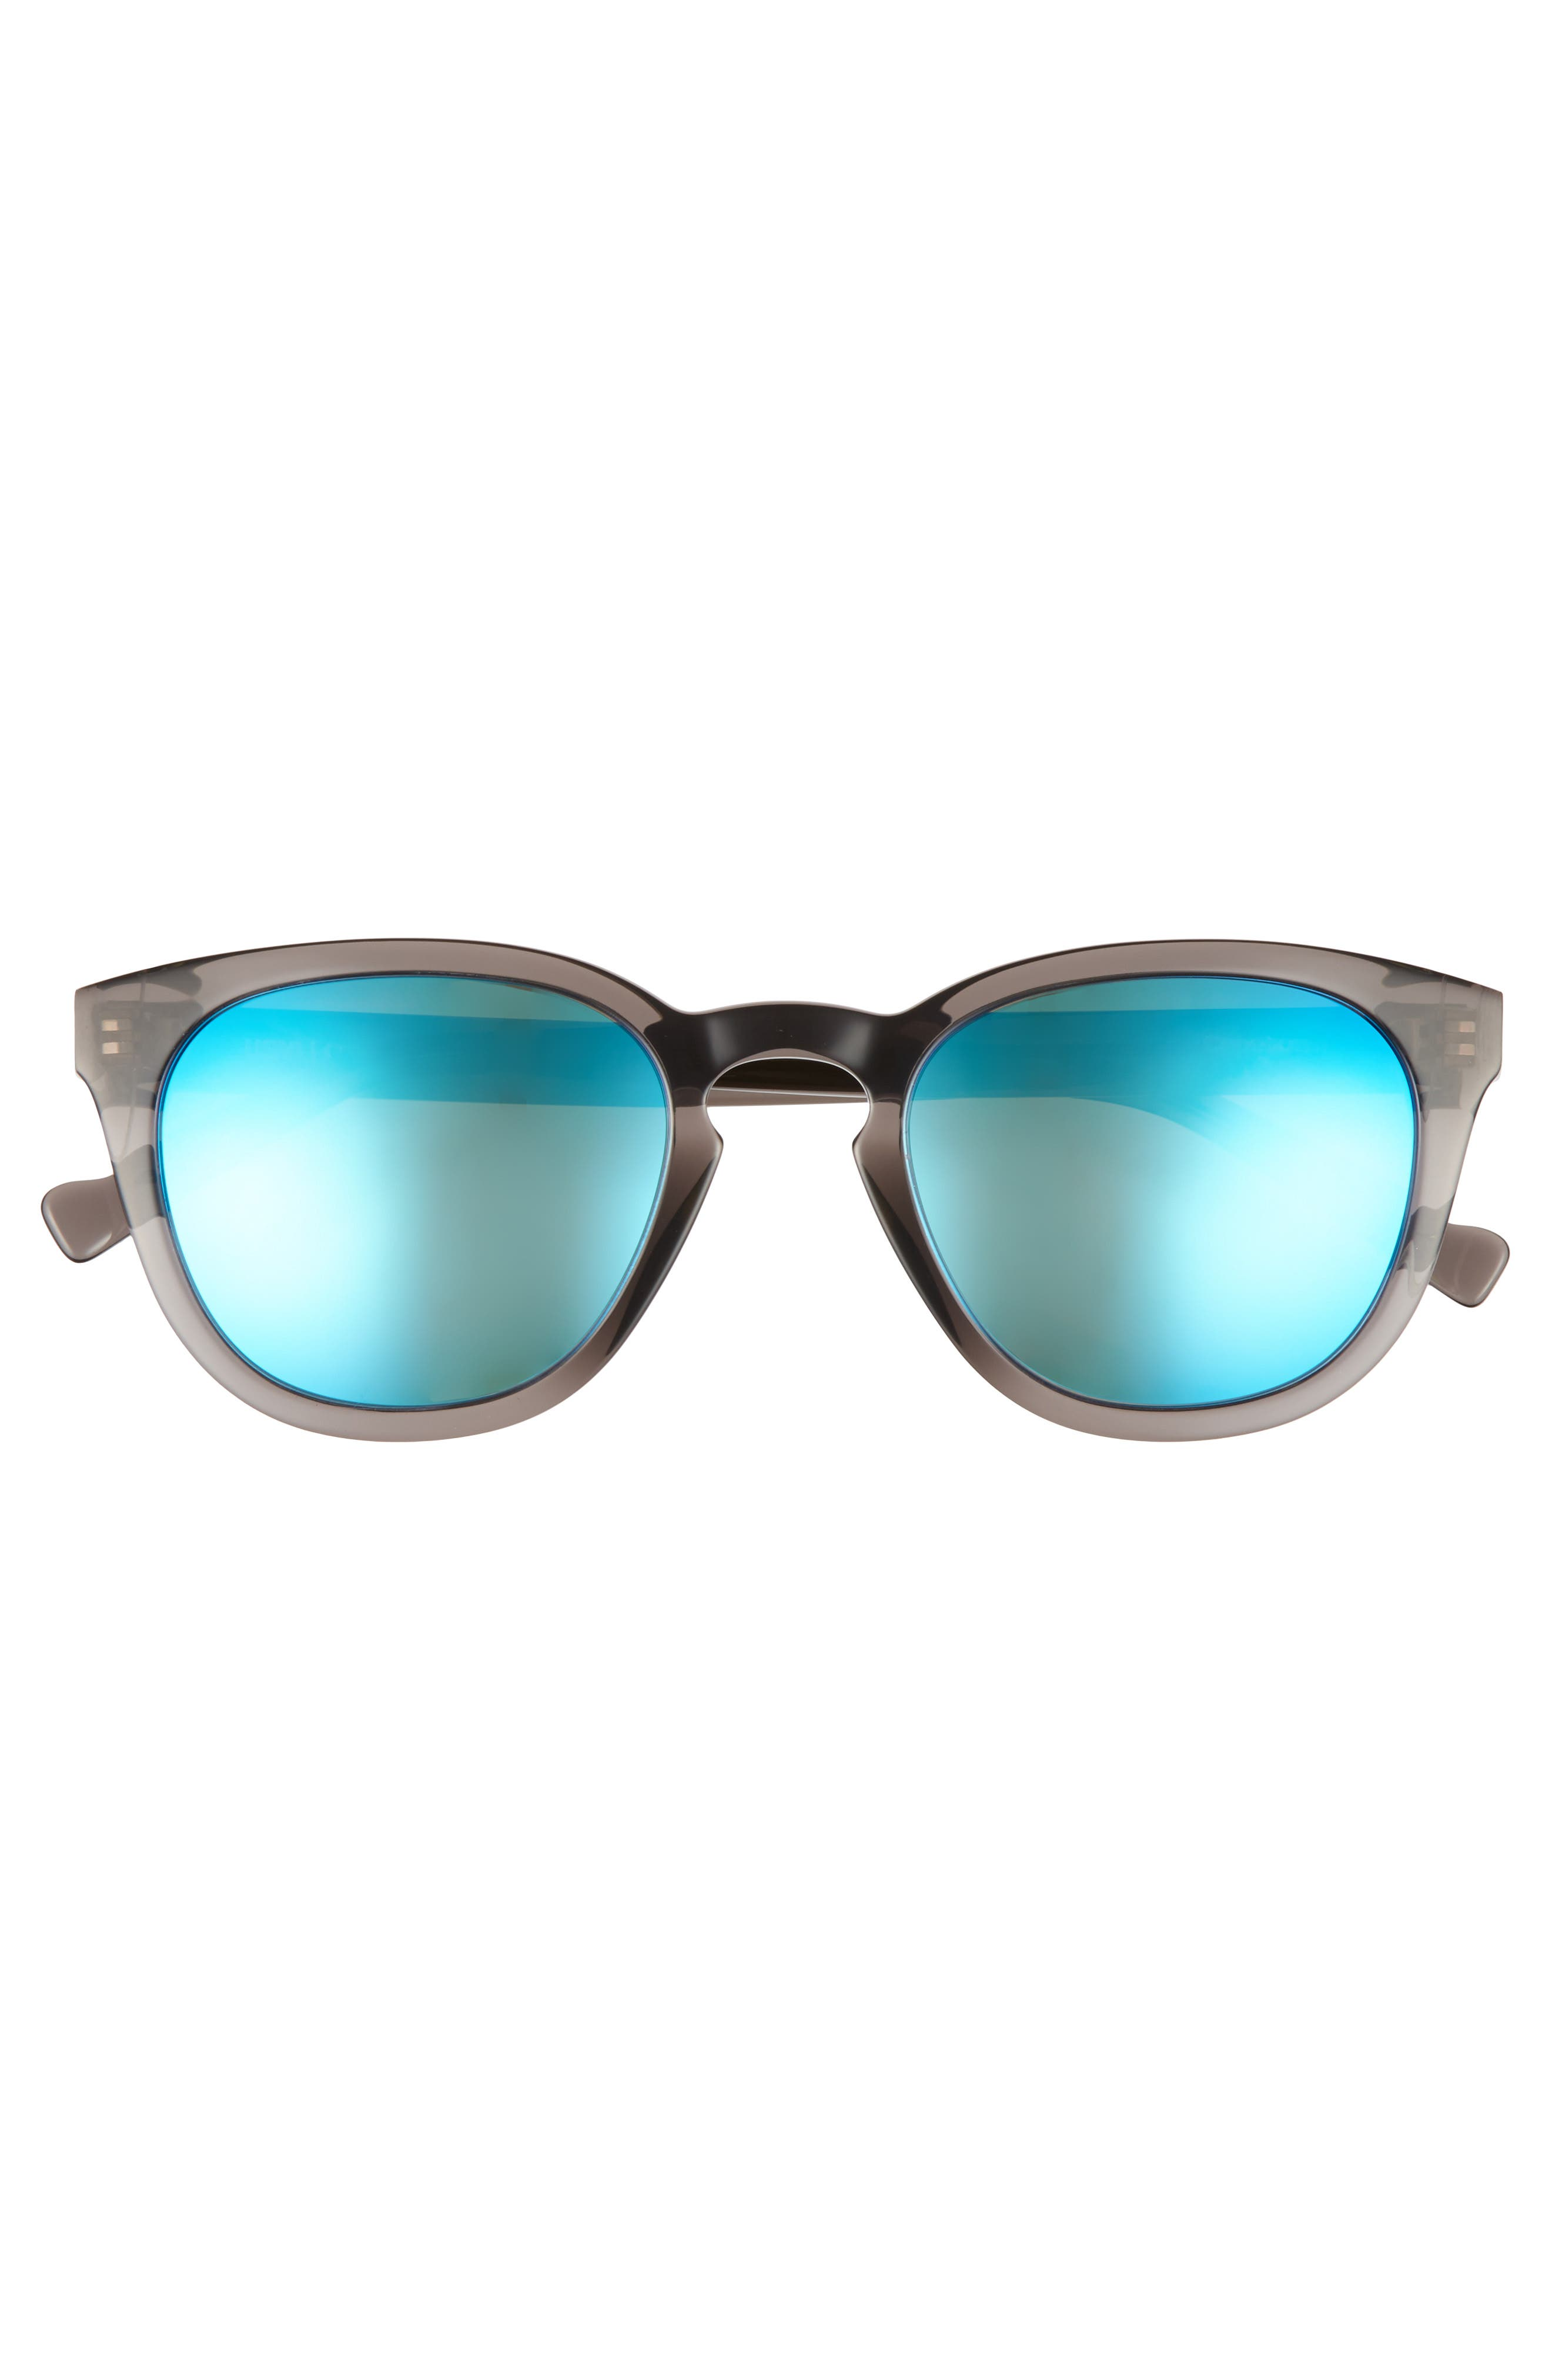 Capetown 50mm Polarized Round Sunglasses,                             Alternate thumbnail 3, color,                             SLATE